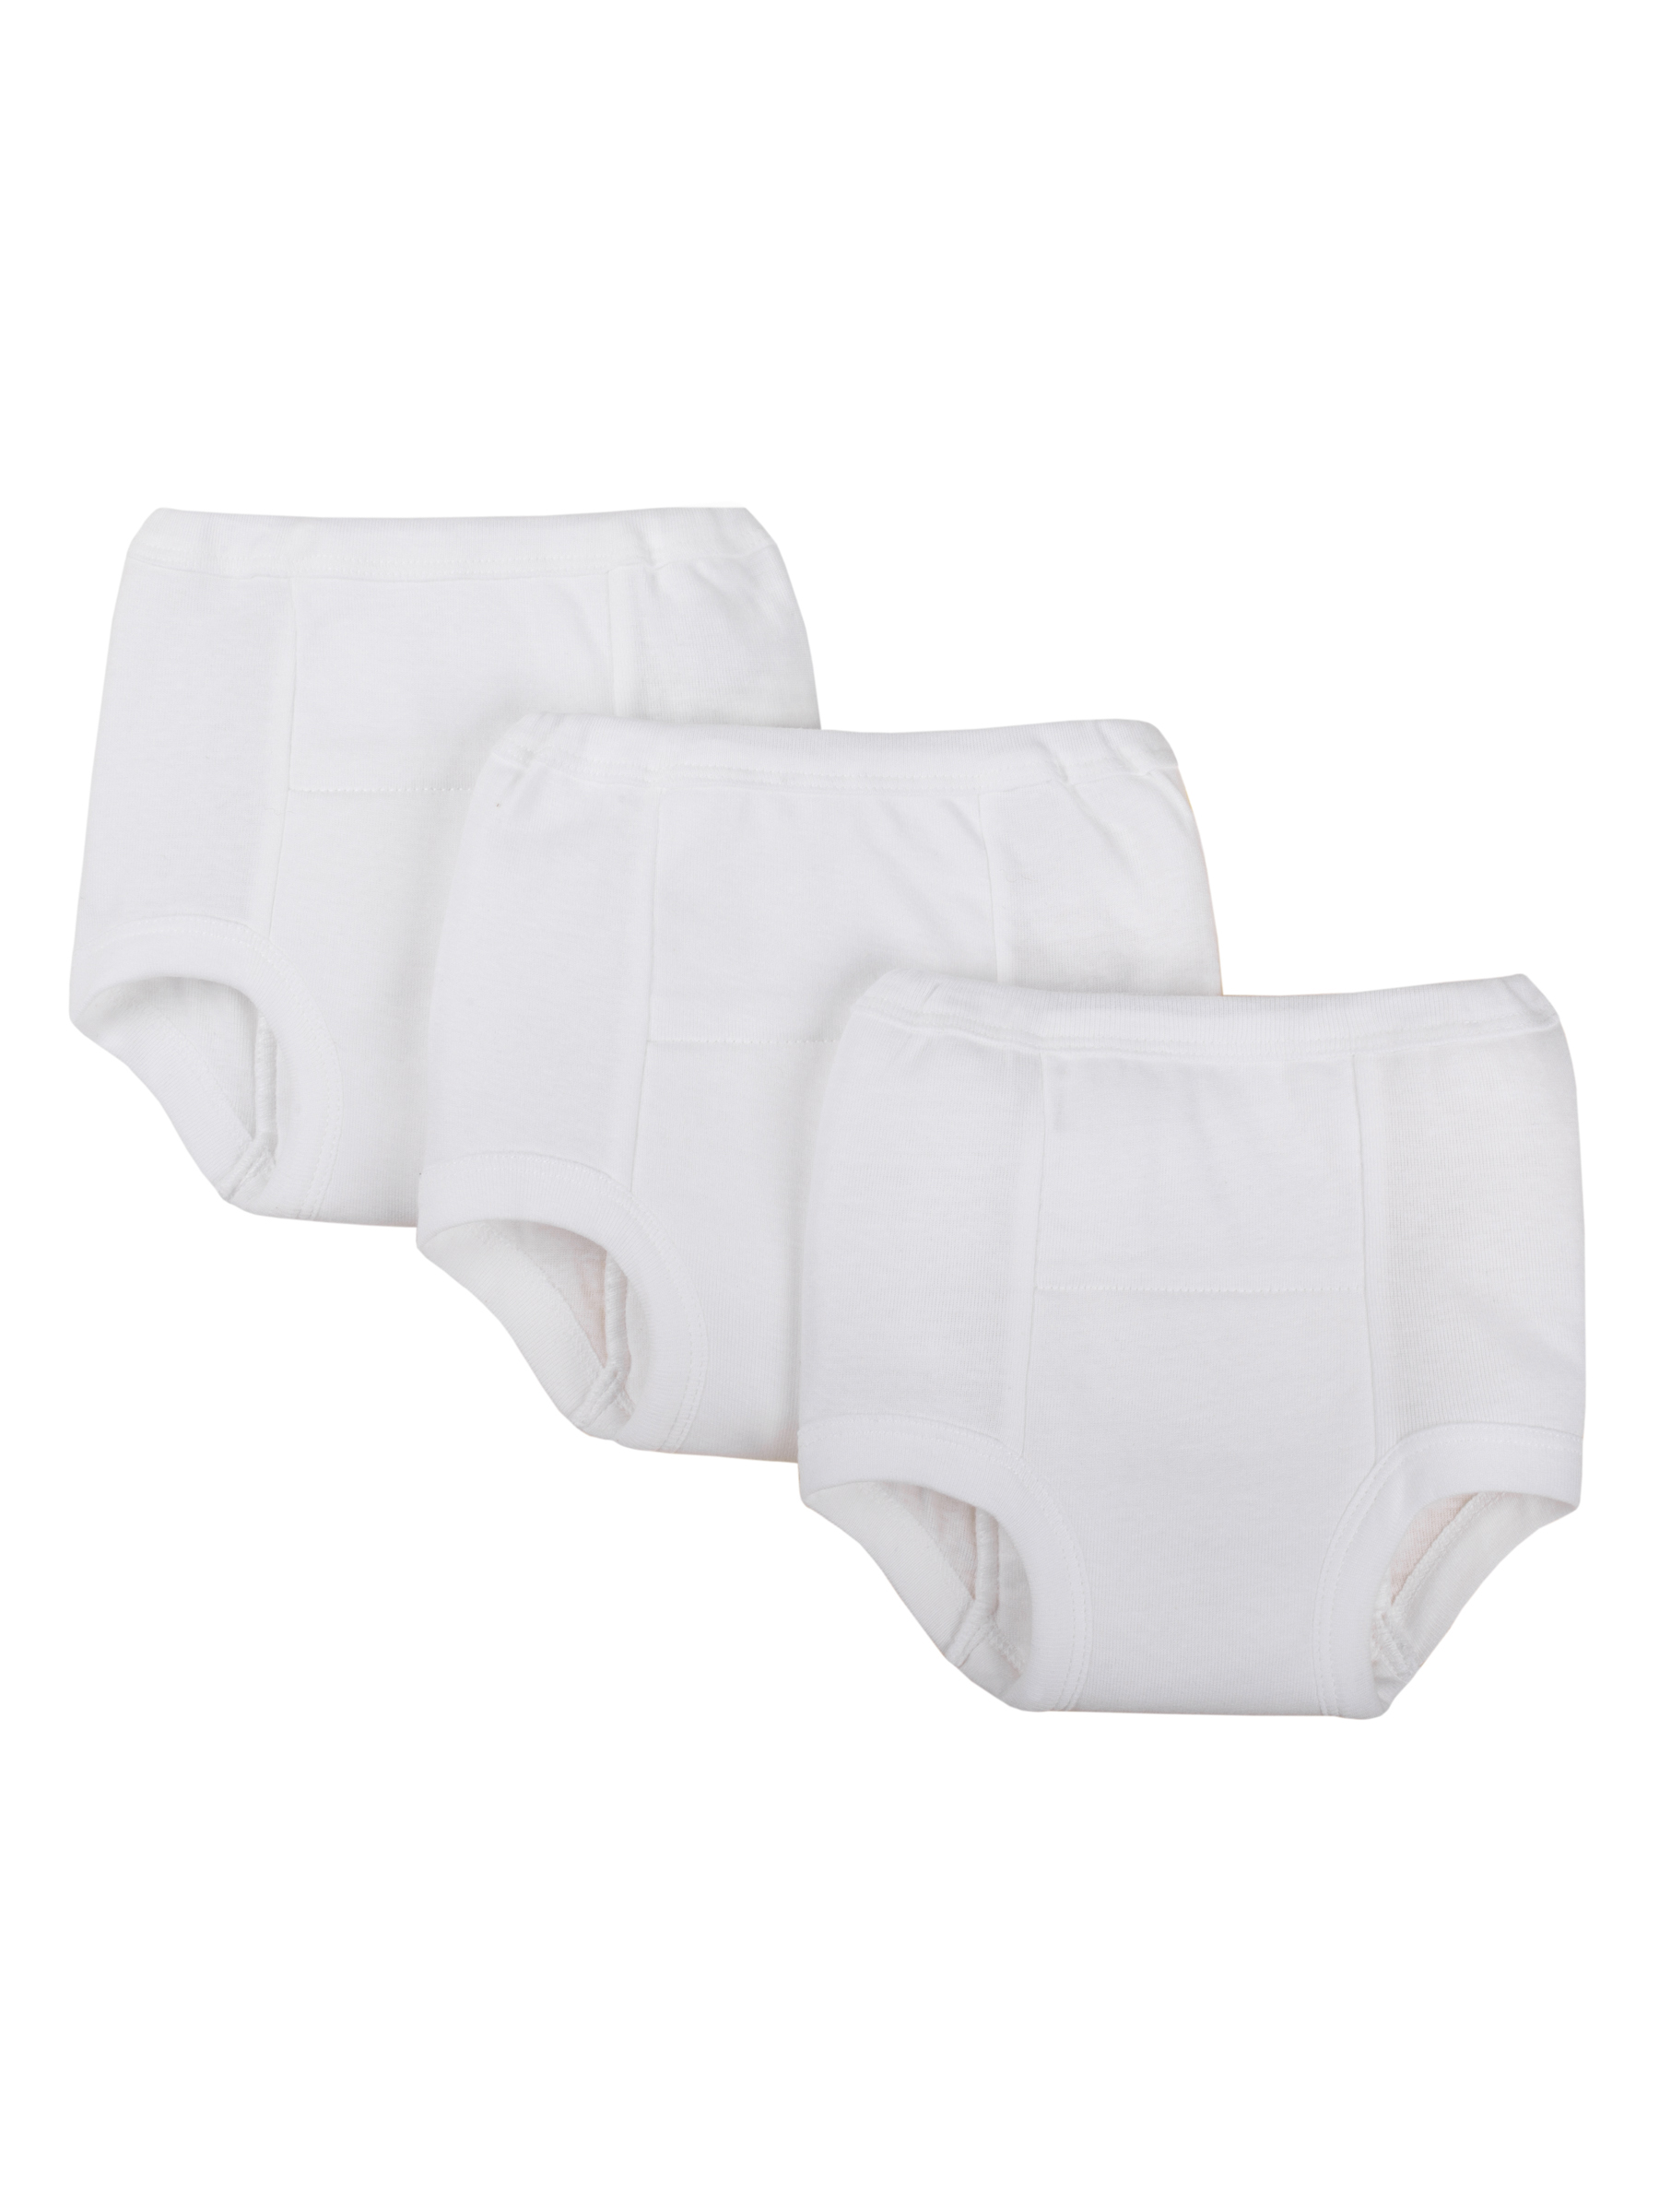 Unisex White Training Pants, 3-pack (Toddler Boys, Toddler Girls, Unisex)